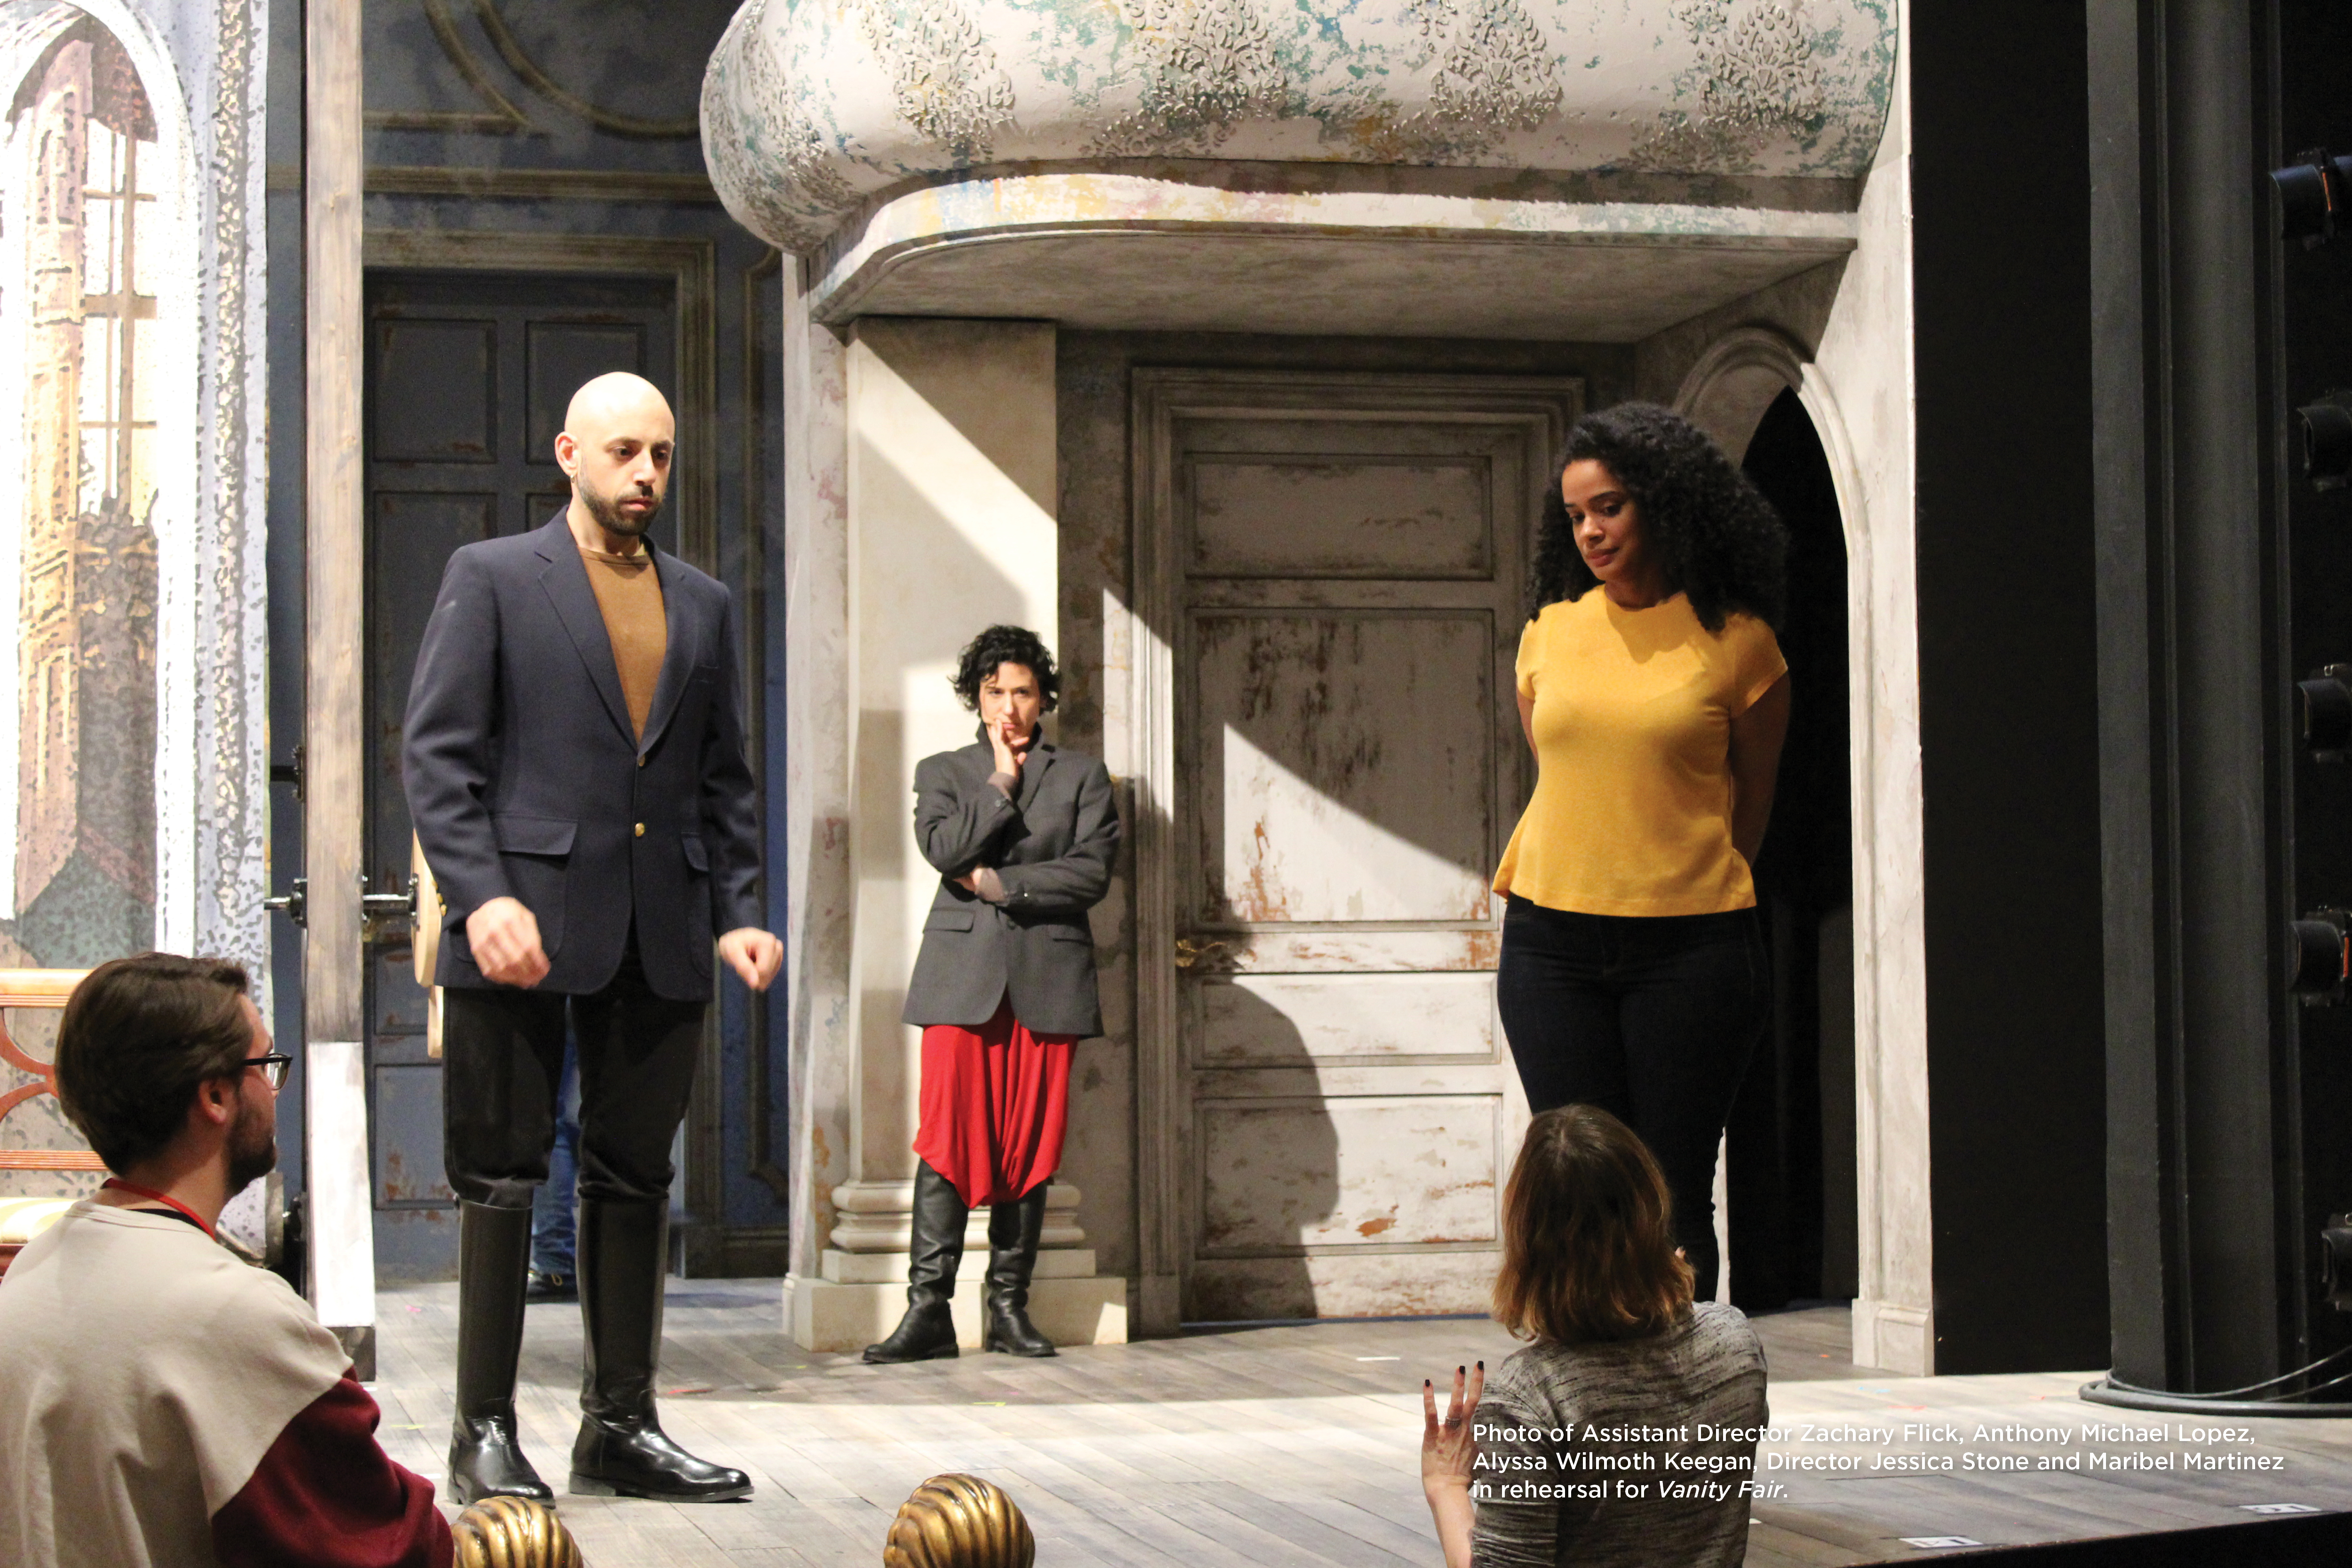 Photo of Assistant Director Zachary Flick, Anthony Michael Lopez, Alyssa Wilmoth Keegan, Director Jessica Stone and Maribel Martinez in rehearsal for Vanity Fair.